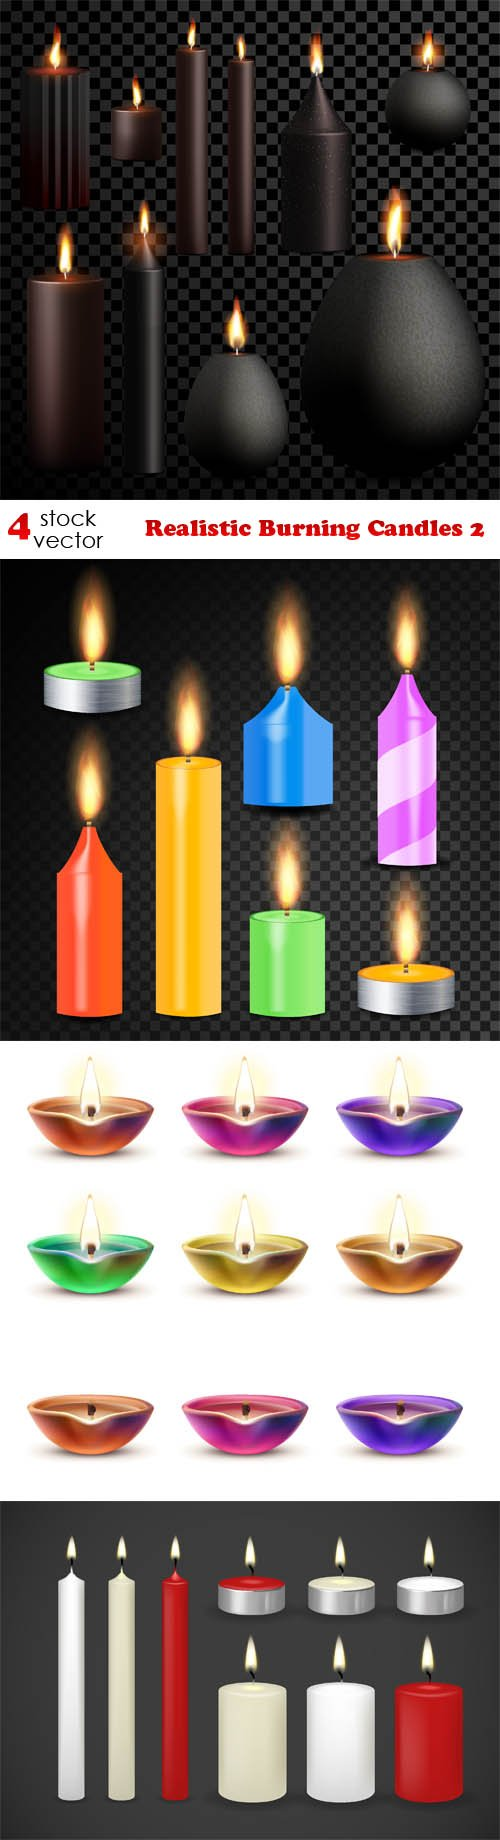 Vectors - Realistic Burning Candles 2